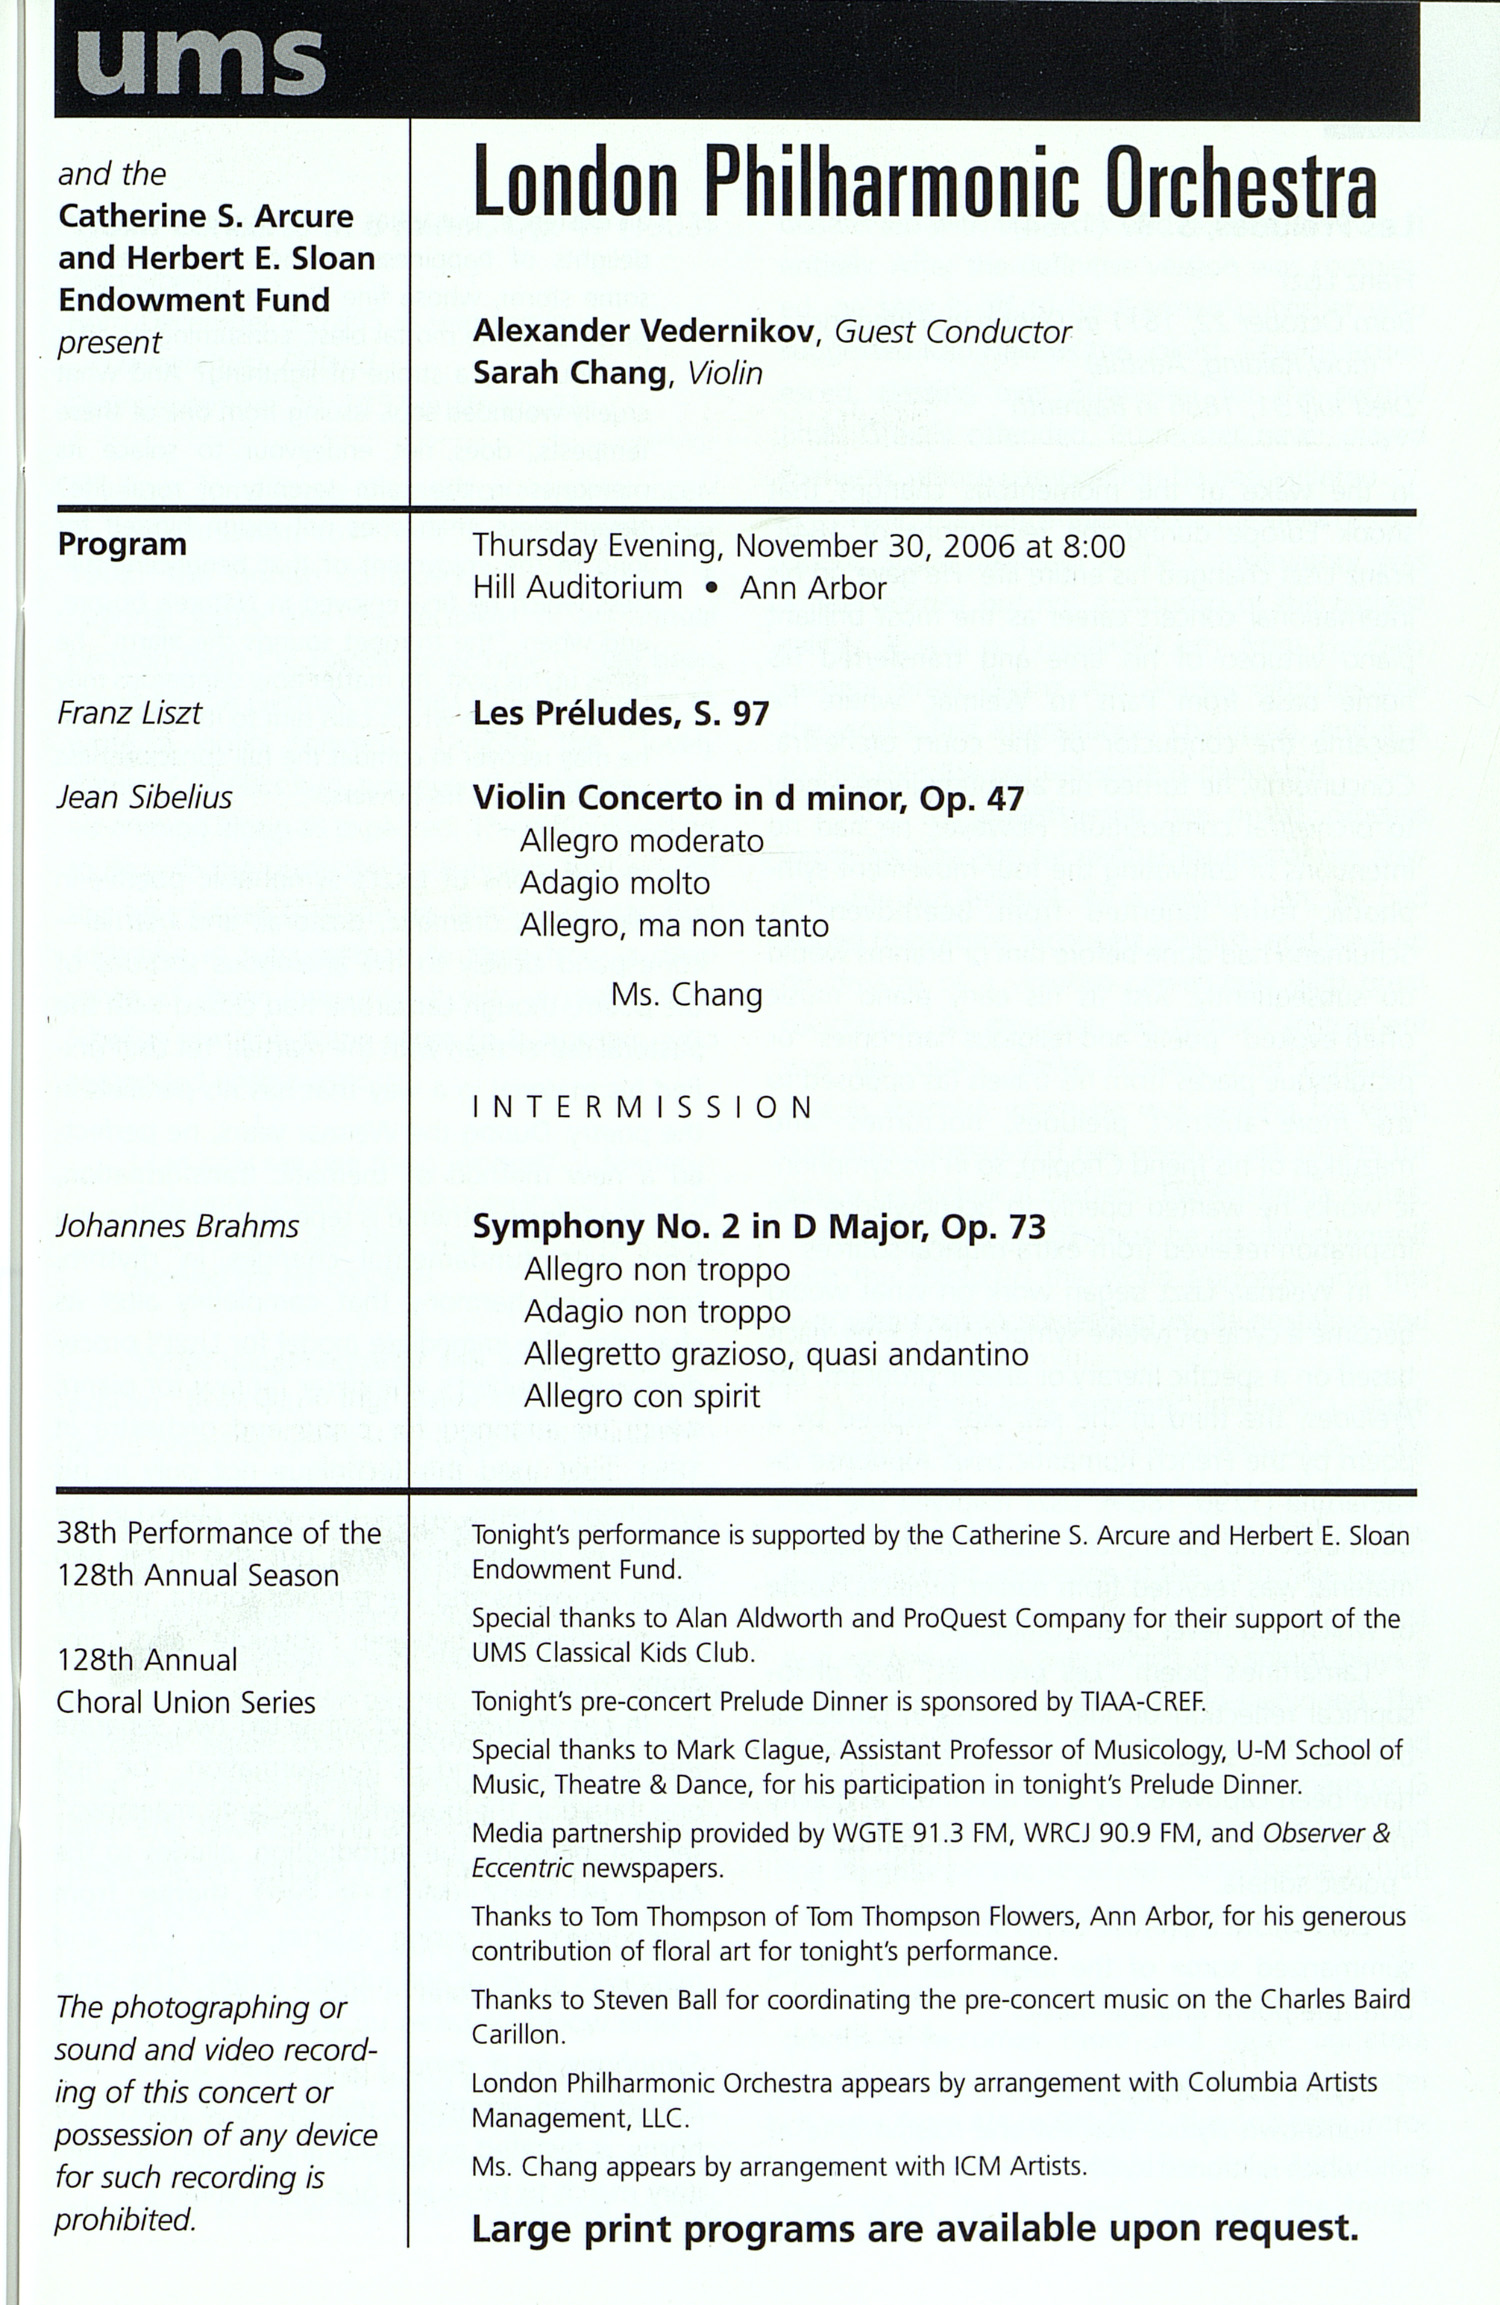 UMS Concert Program, Thursday Nov. 30 To Dec. 10: University Musical Society: Fall 2006 - Thursday Nov. 30 To Dec. 10 --  image